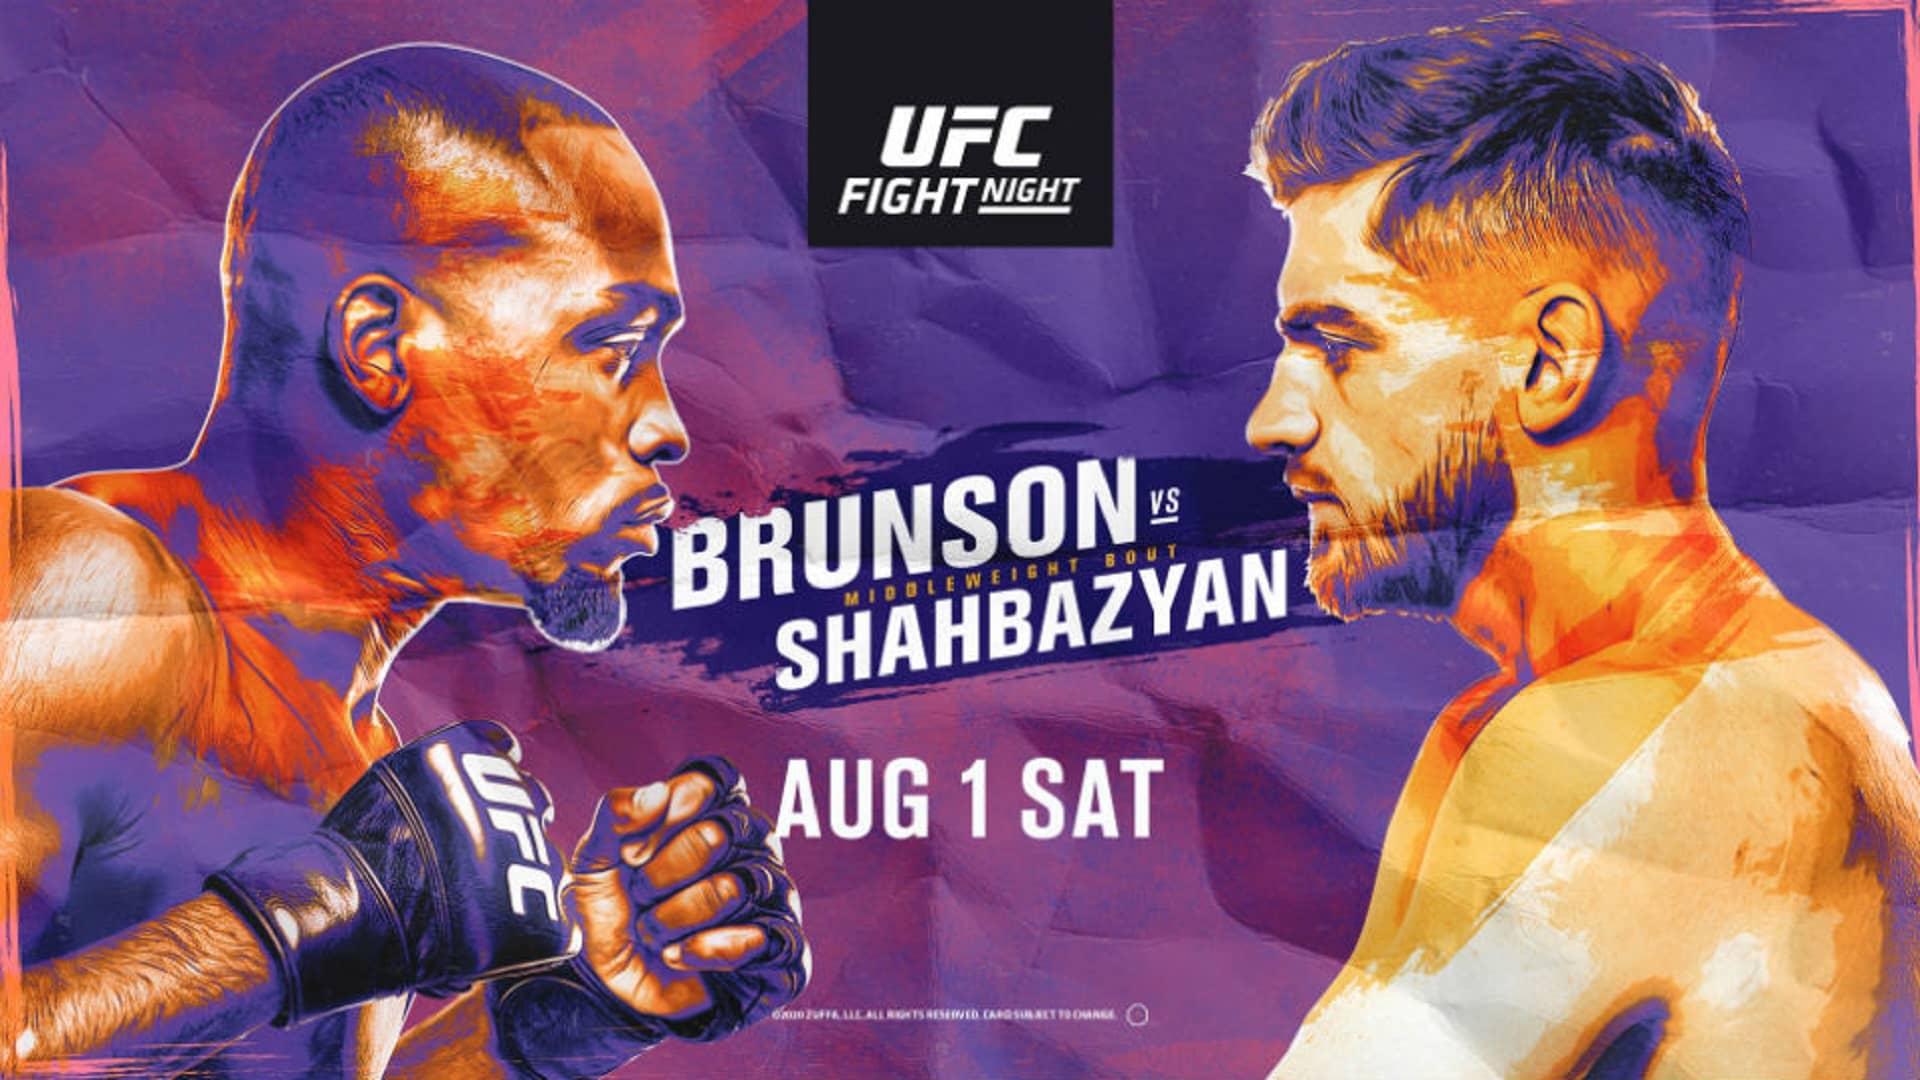 UFC-Fight-Night-Brunson-vs-Shahbazyan